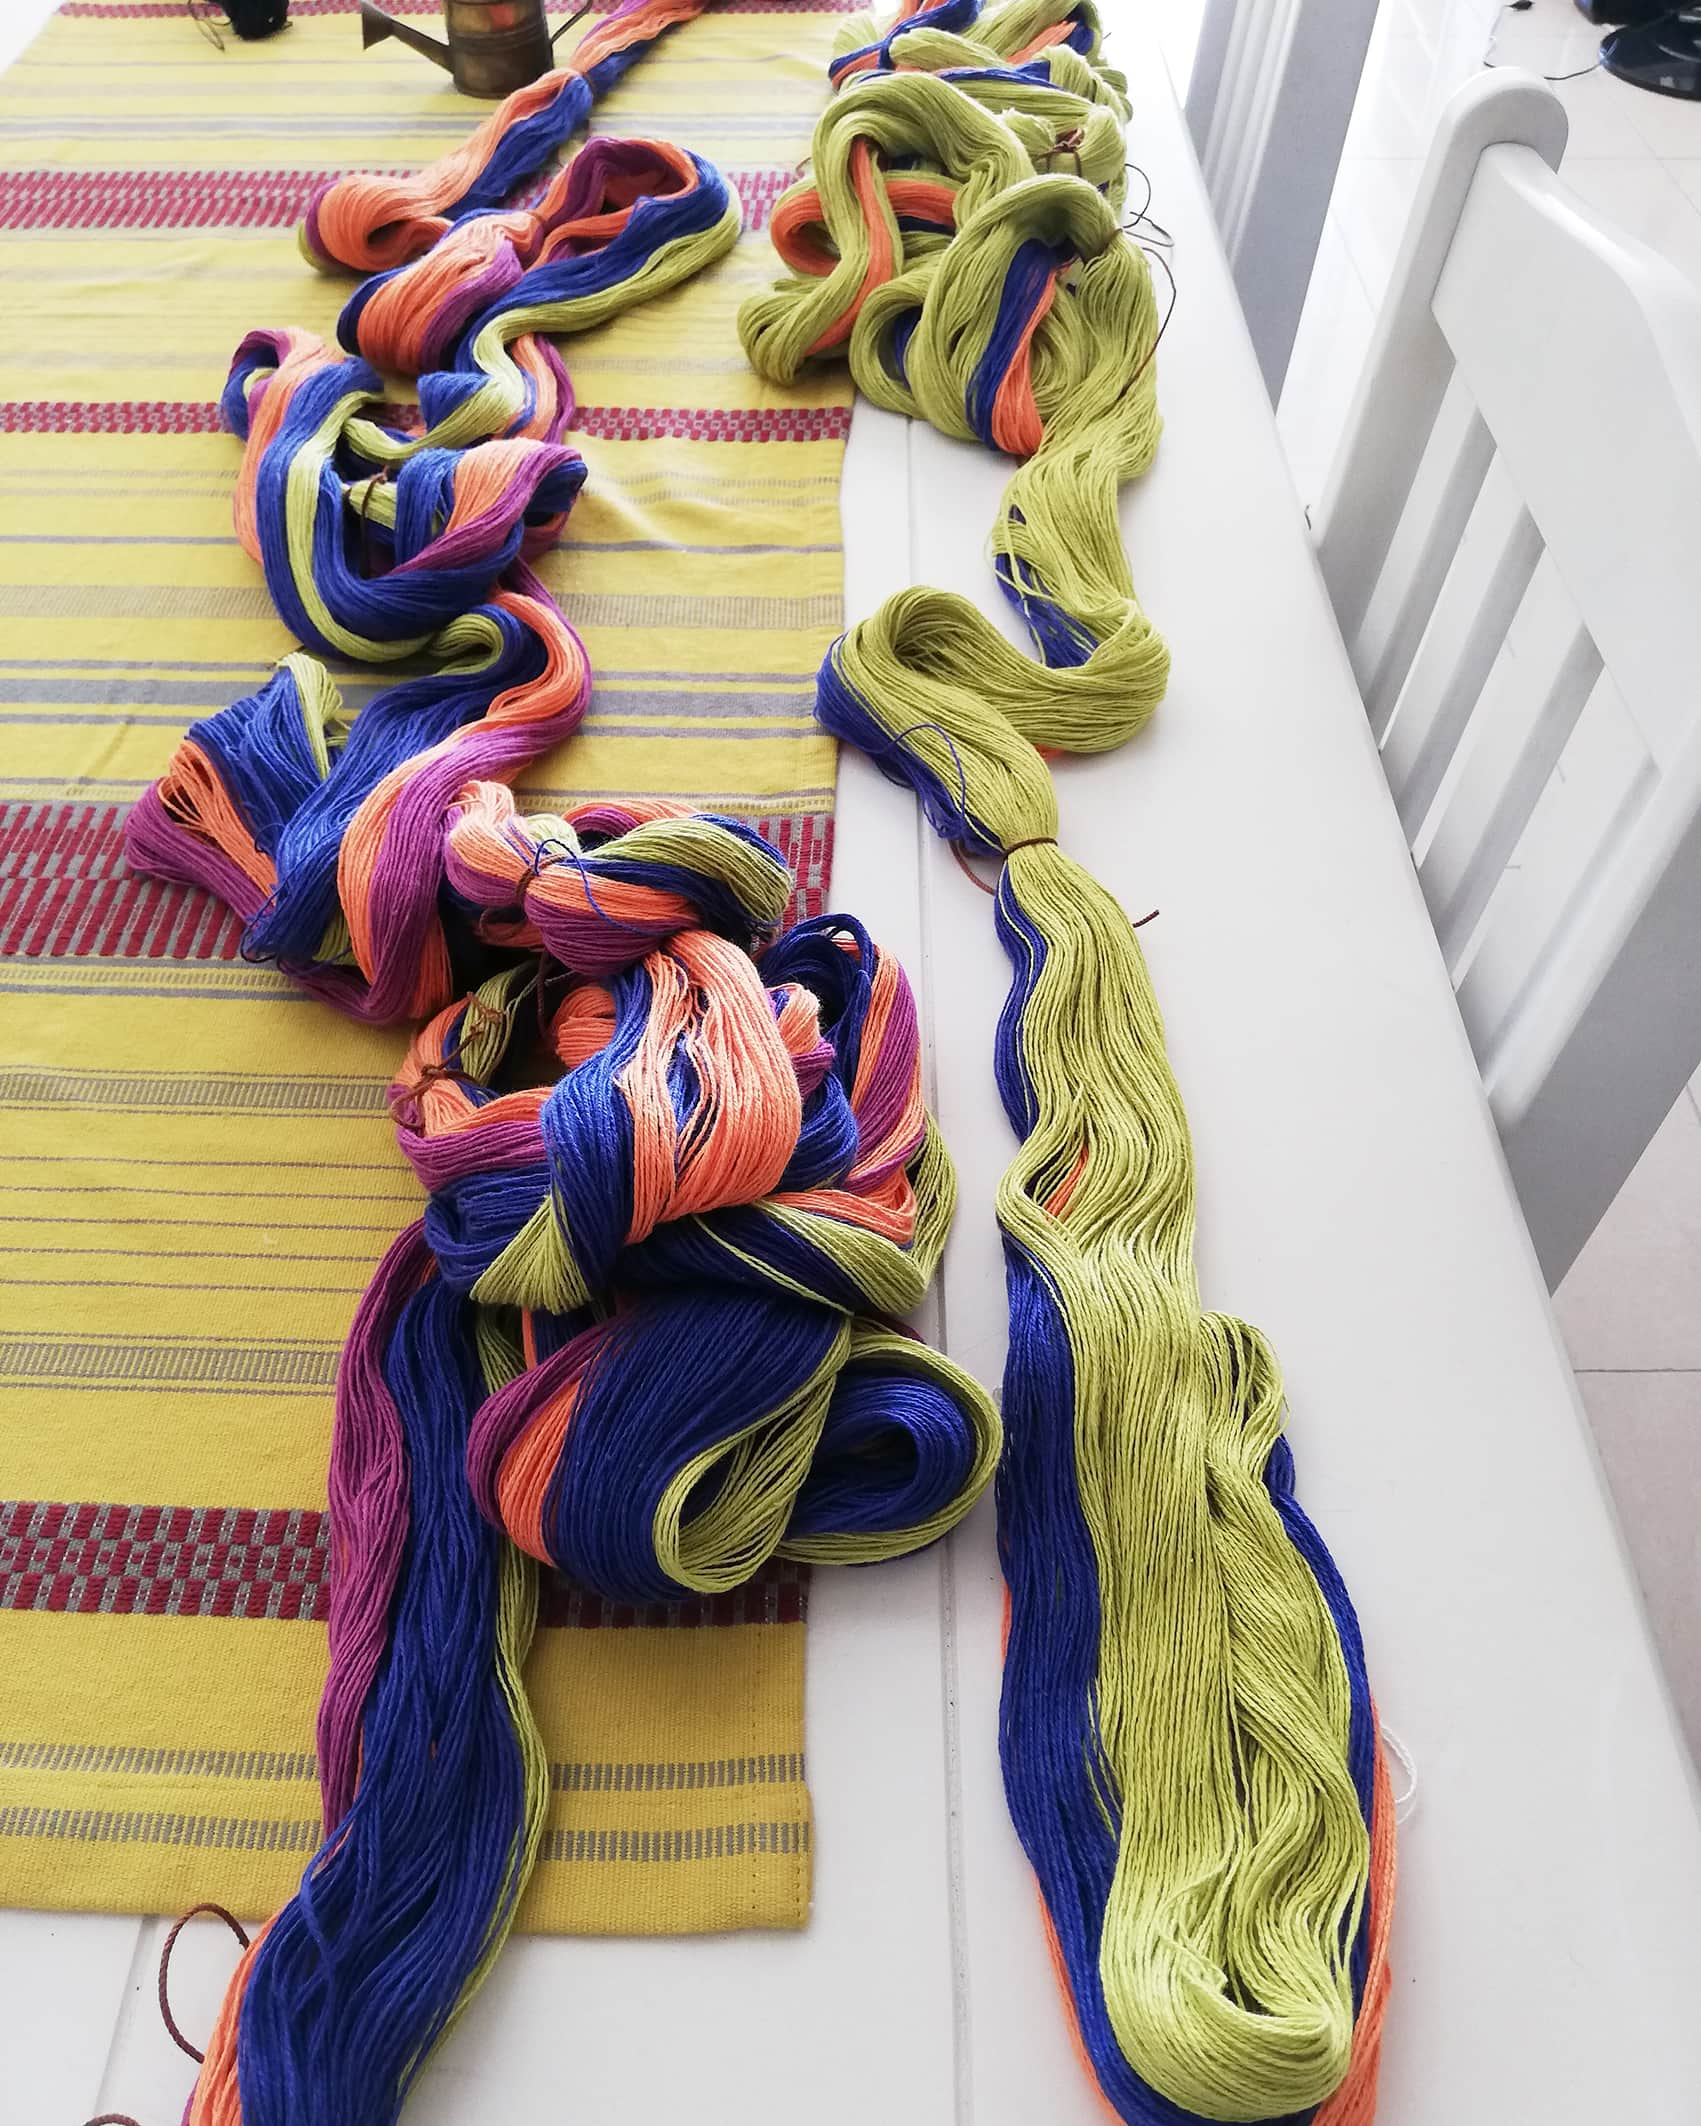 Warp ready for the loom - a creation in the making from Mungo head designer, Lenore Schroeder